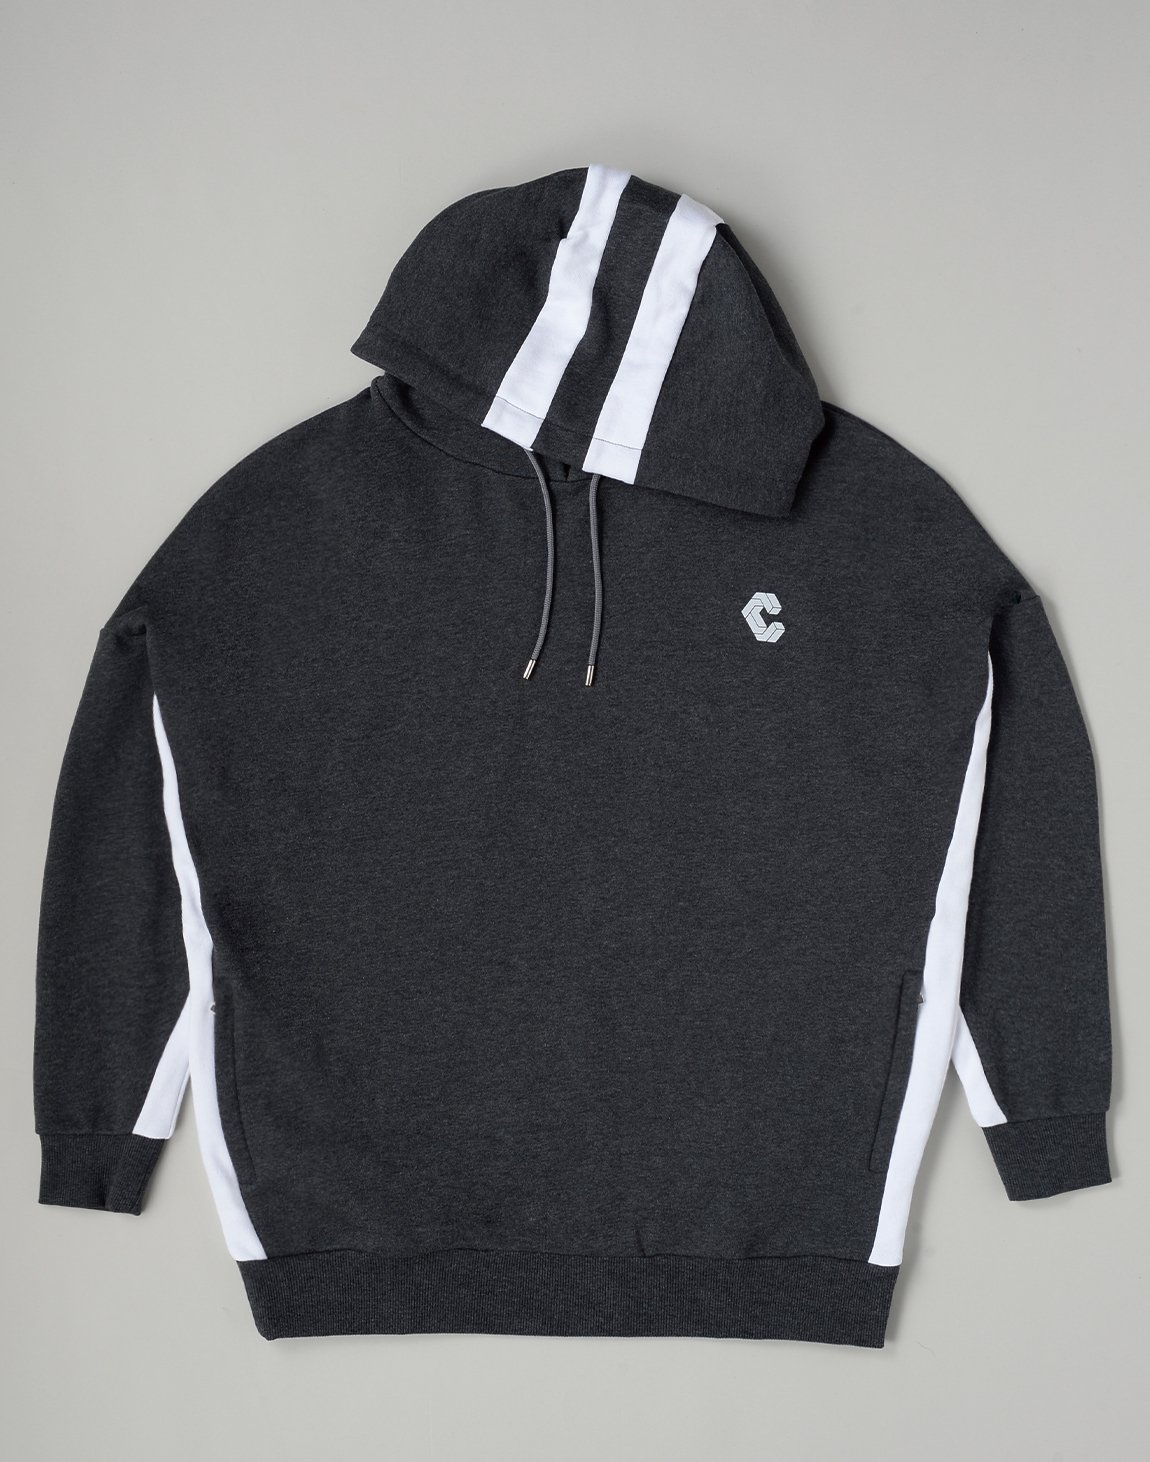 <img class='new_mark_img1' src='https://img.shop-pro.jp/img/new/icons1.gif' style='border:none;display:inline;margin:0px;padding:0px;width:auto;' />CRONOS 2STRIPE HOODIE【C.GRAY】